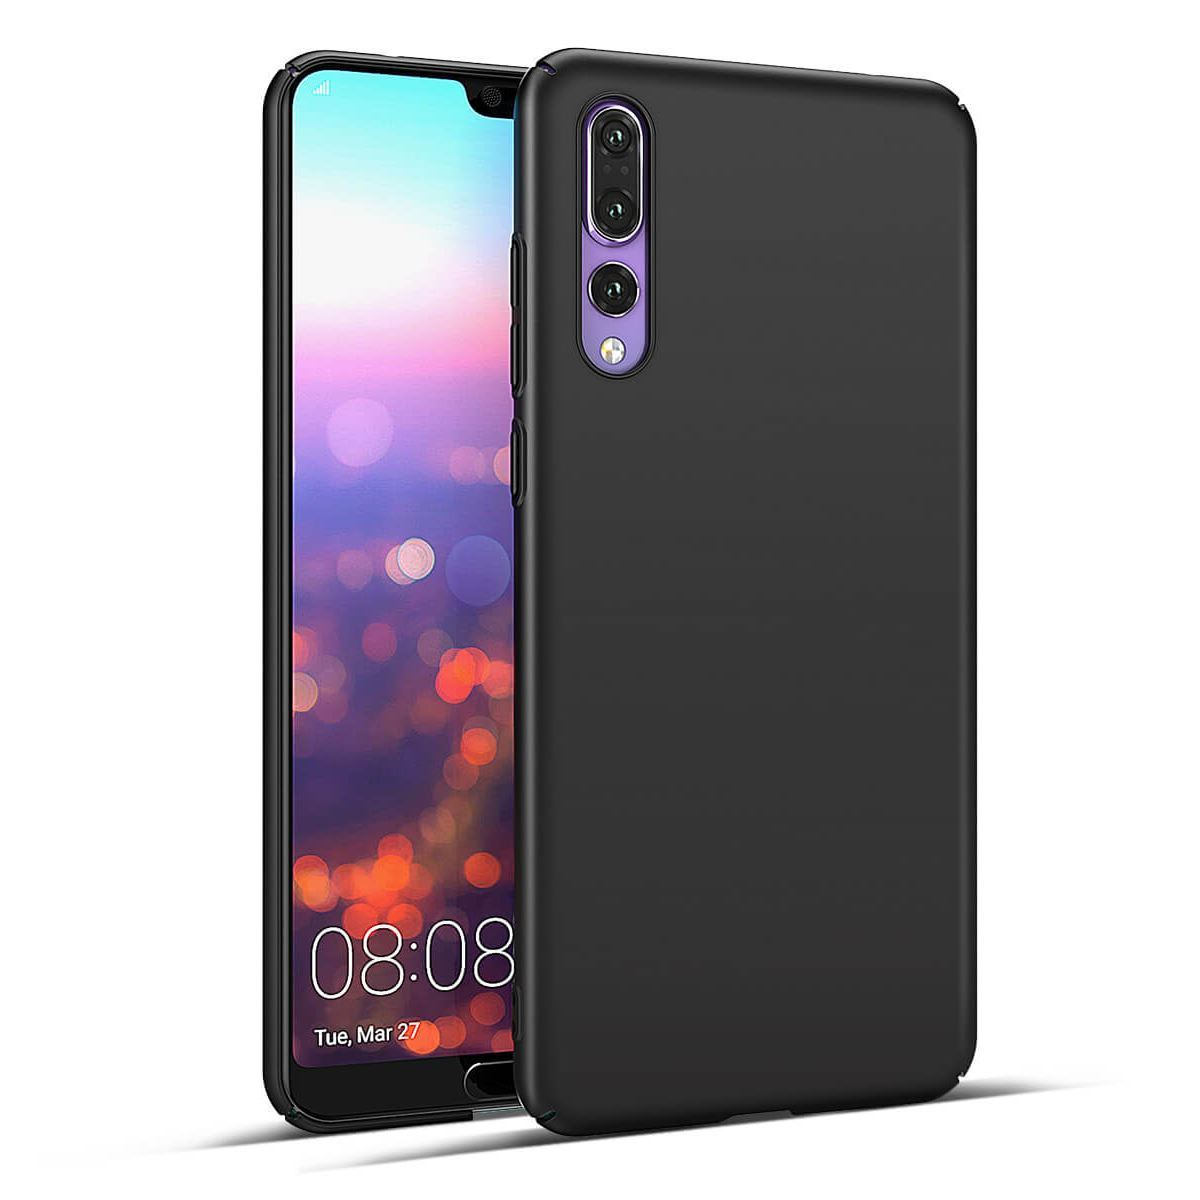 Huawei P10 Case Protective Slim Thin Hard Cover - Black